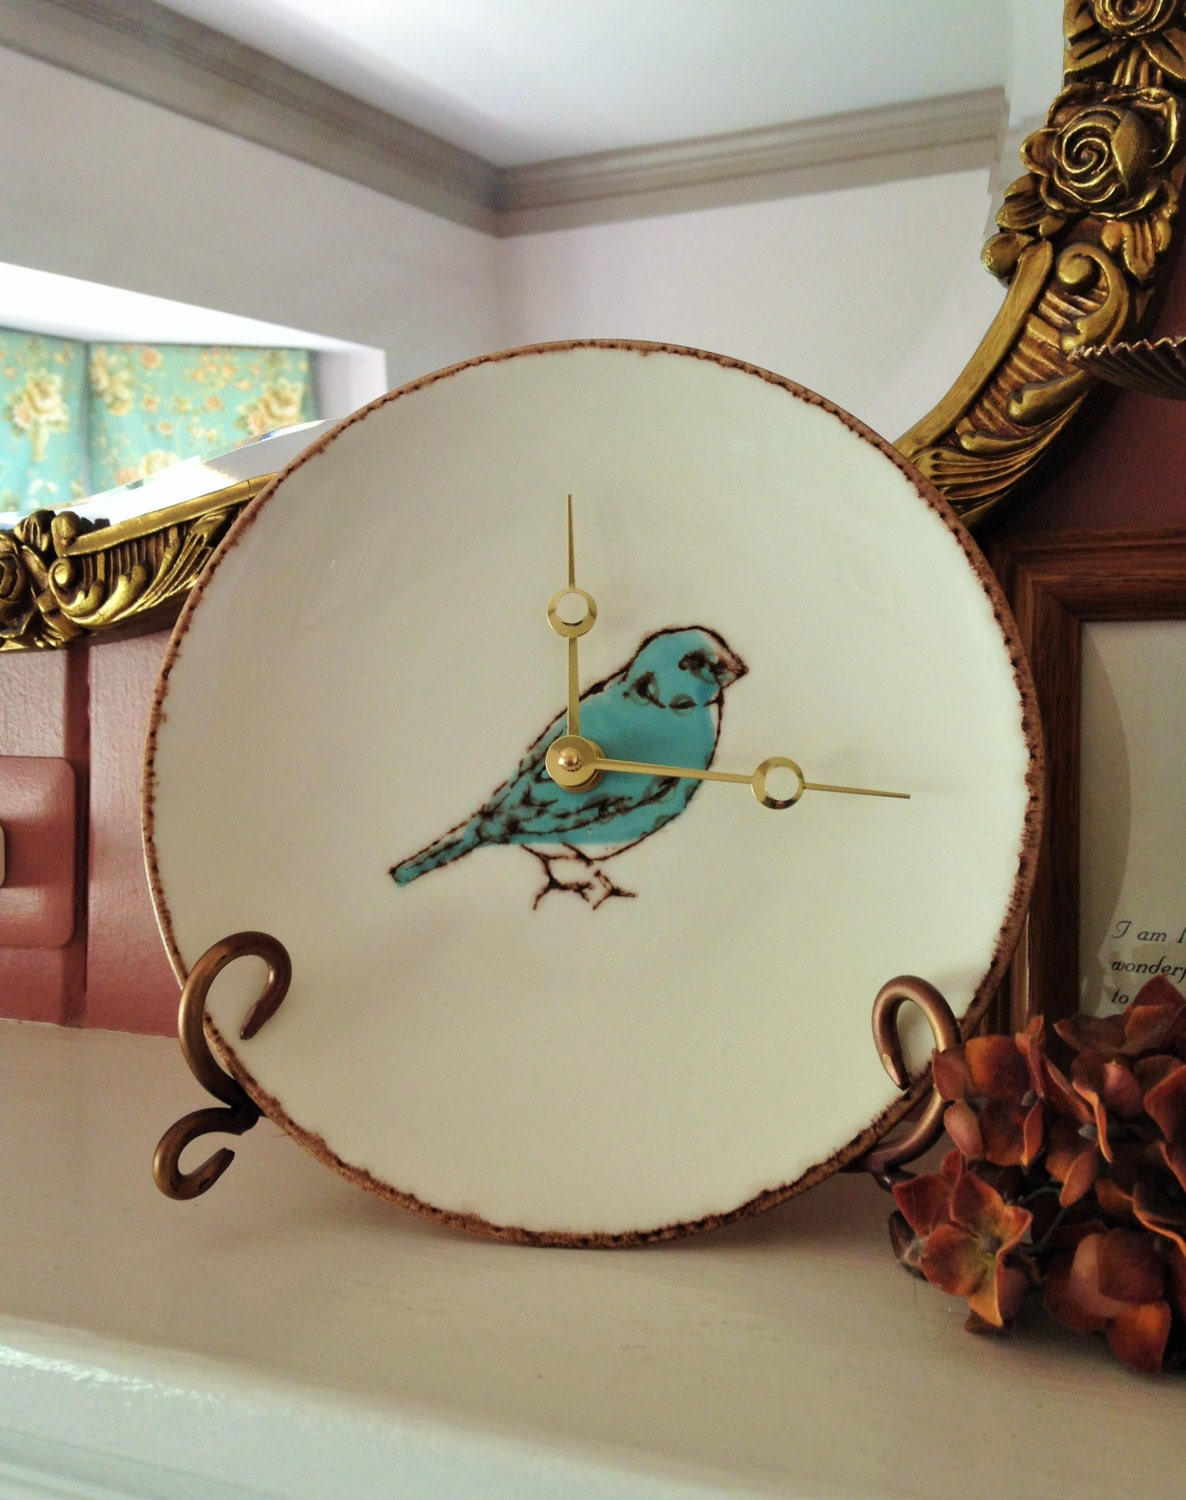 Springtime Blue Bird Ceramic Plate Clock Made In Portugal Hand